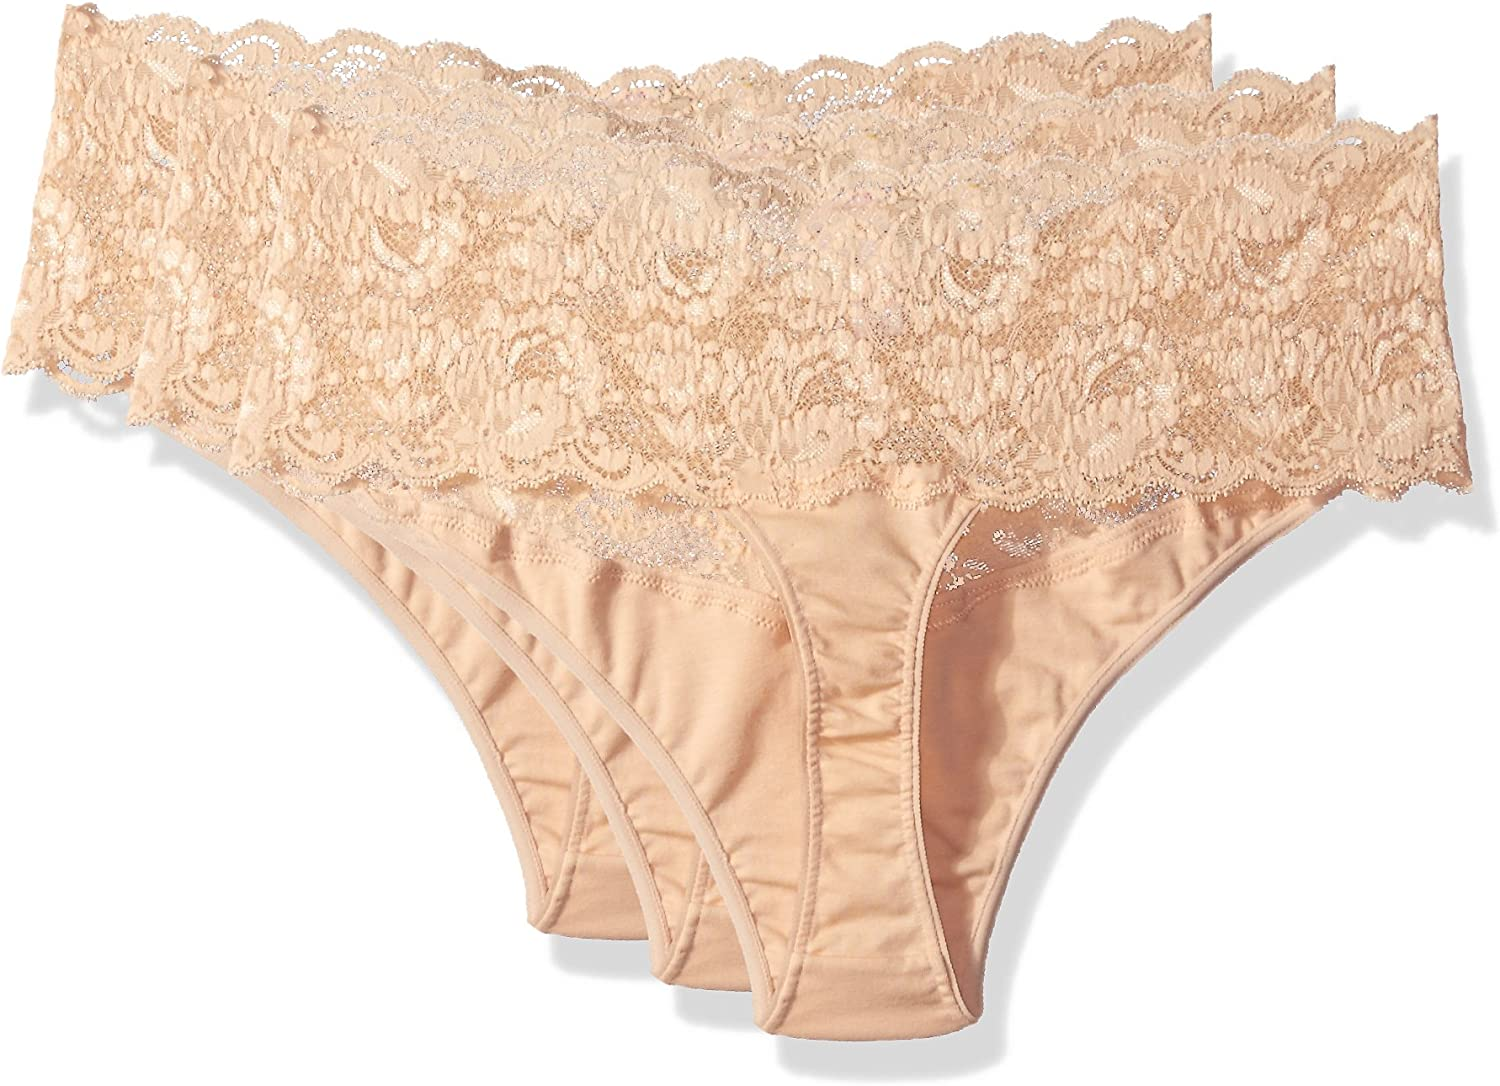 Cosabella Womens Say Never Lovelie Thong Plus Size 3 Pack Set